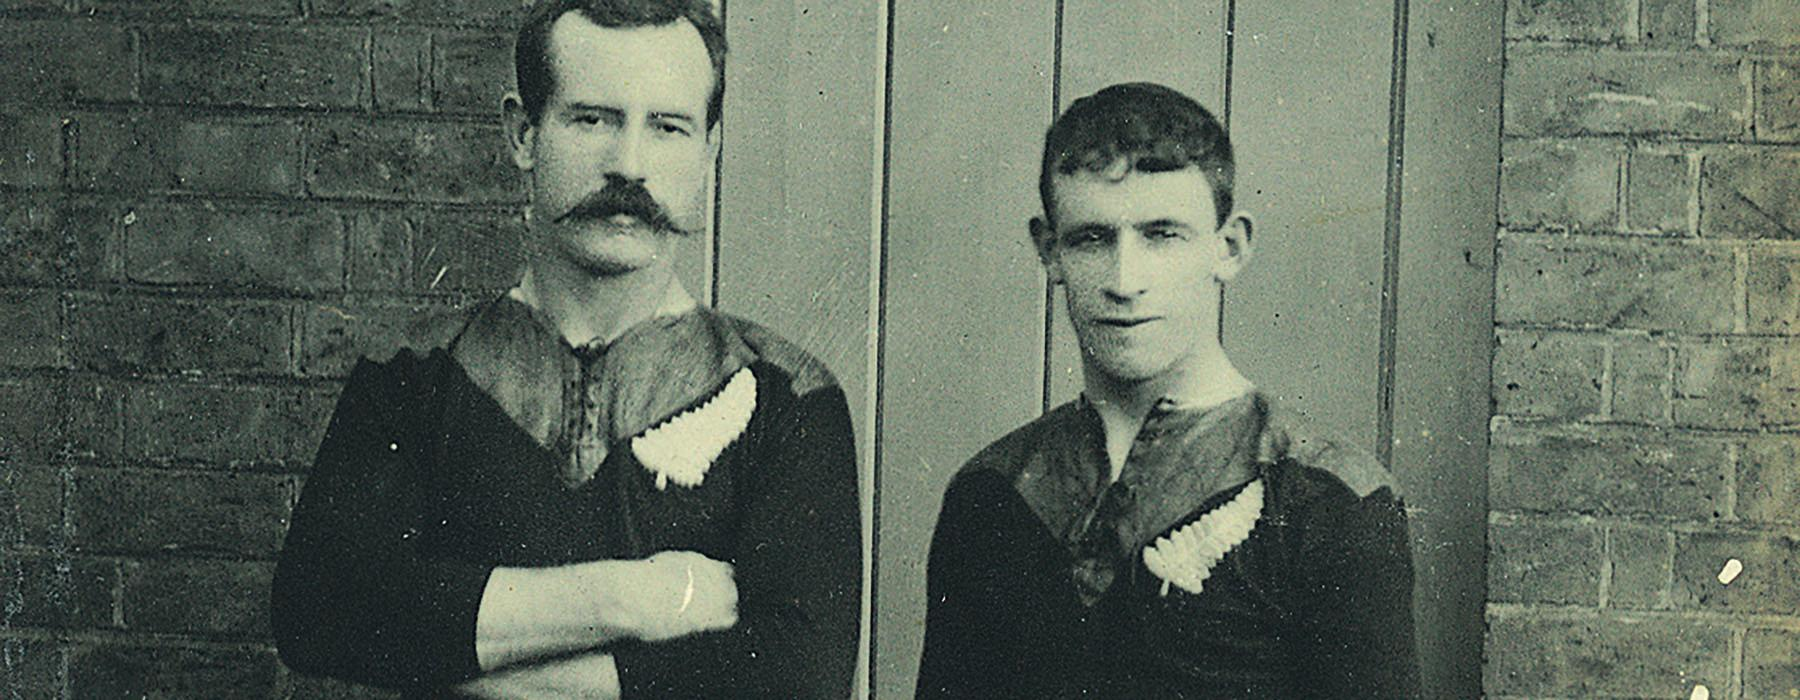 Rugby Legends: The Spirit of the Black Jersey